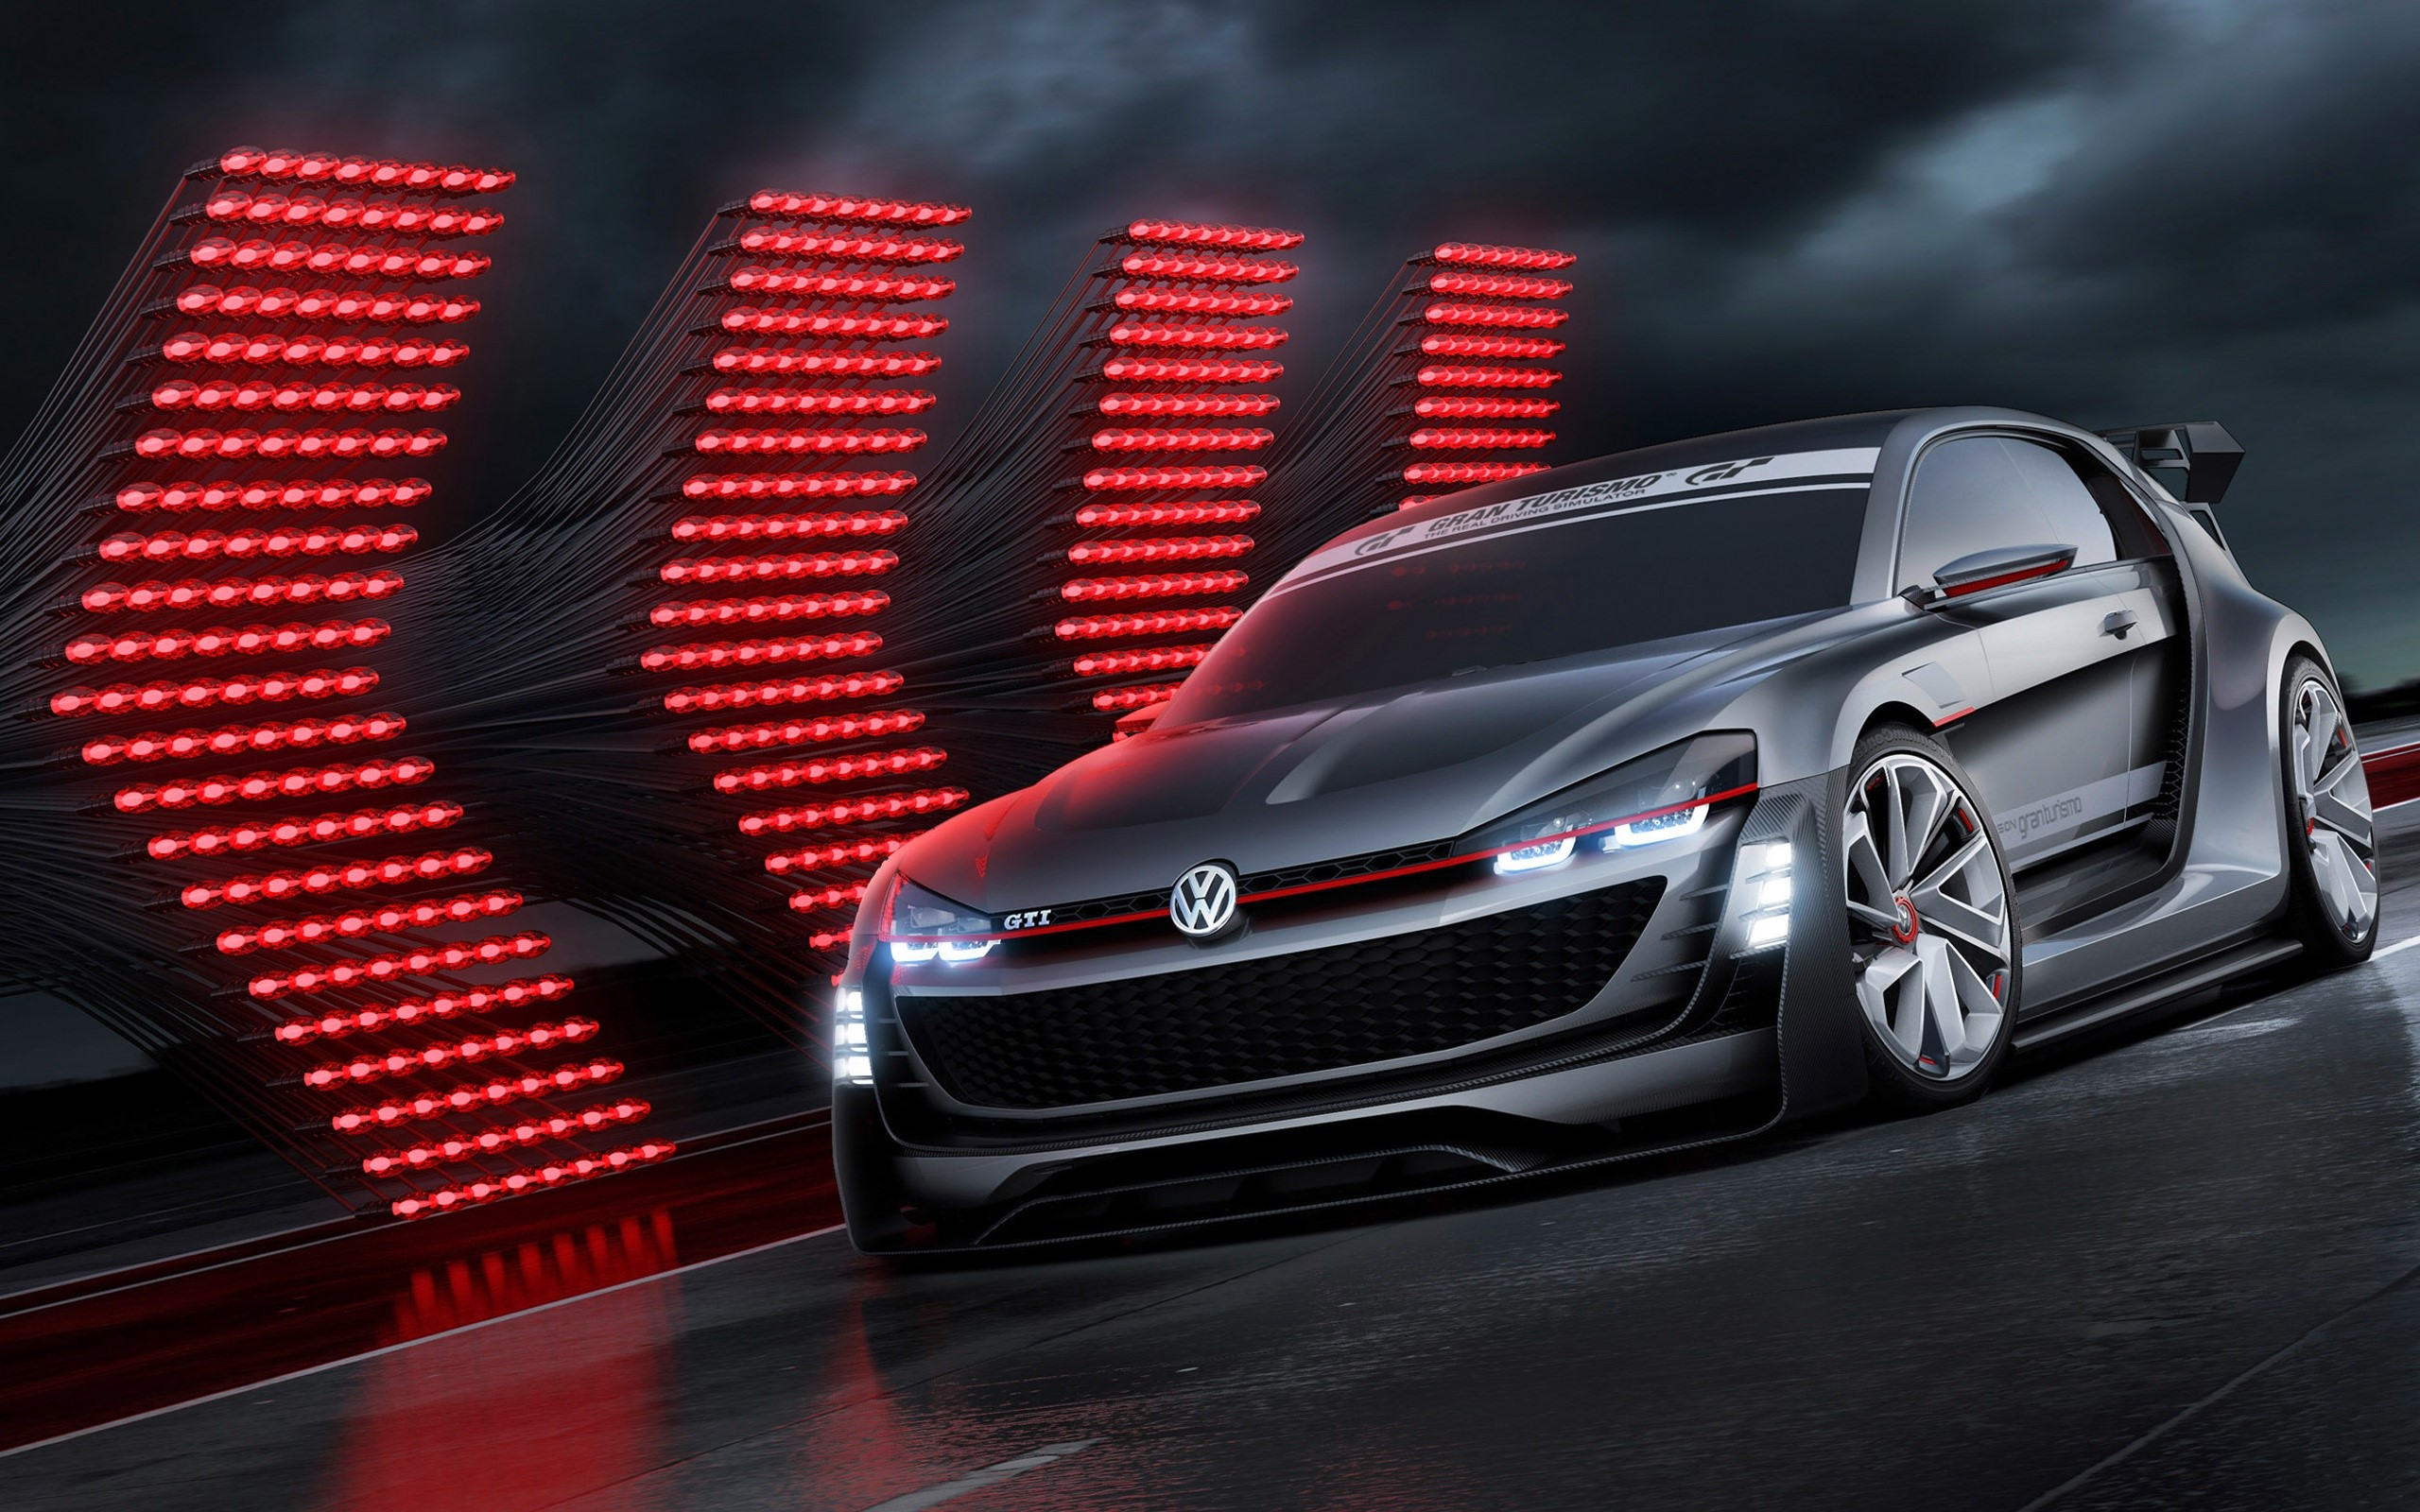 Wallpaper Volkswagen GTI Supersport Vision Gran Turismo